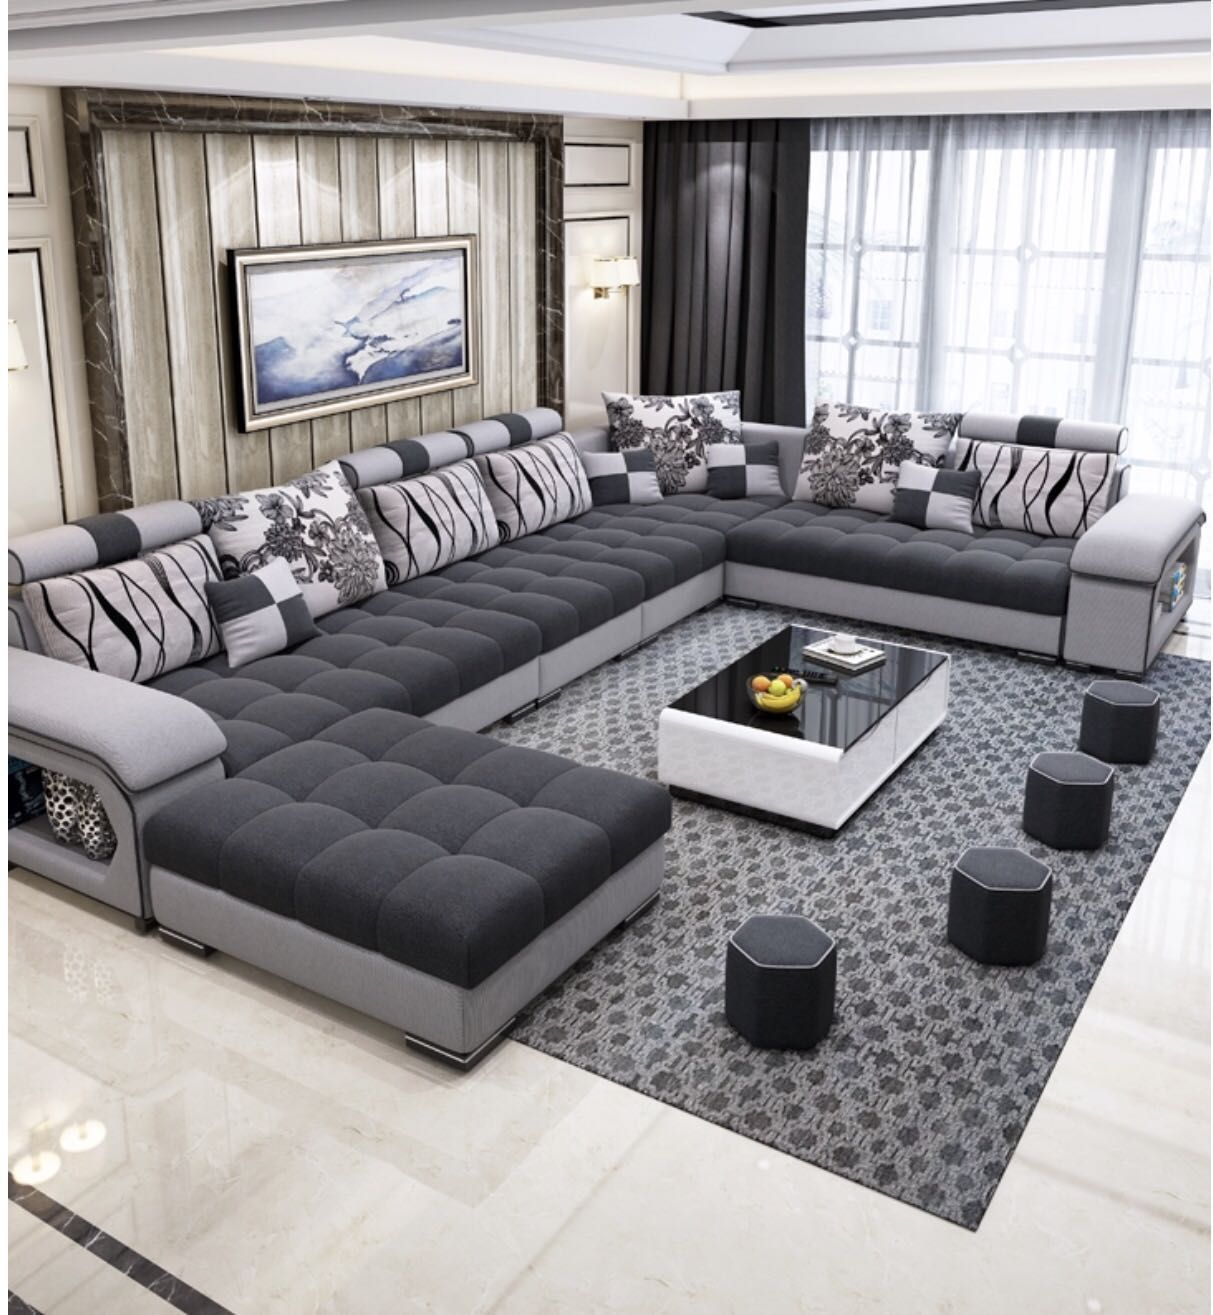 Best Sofa Beds for Everyday Use The Sleep Judge Furniture ...